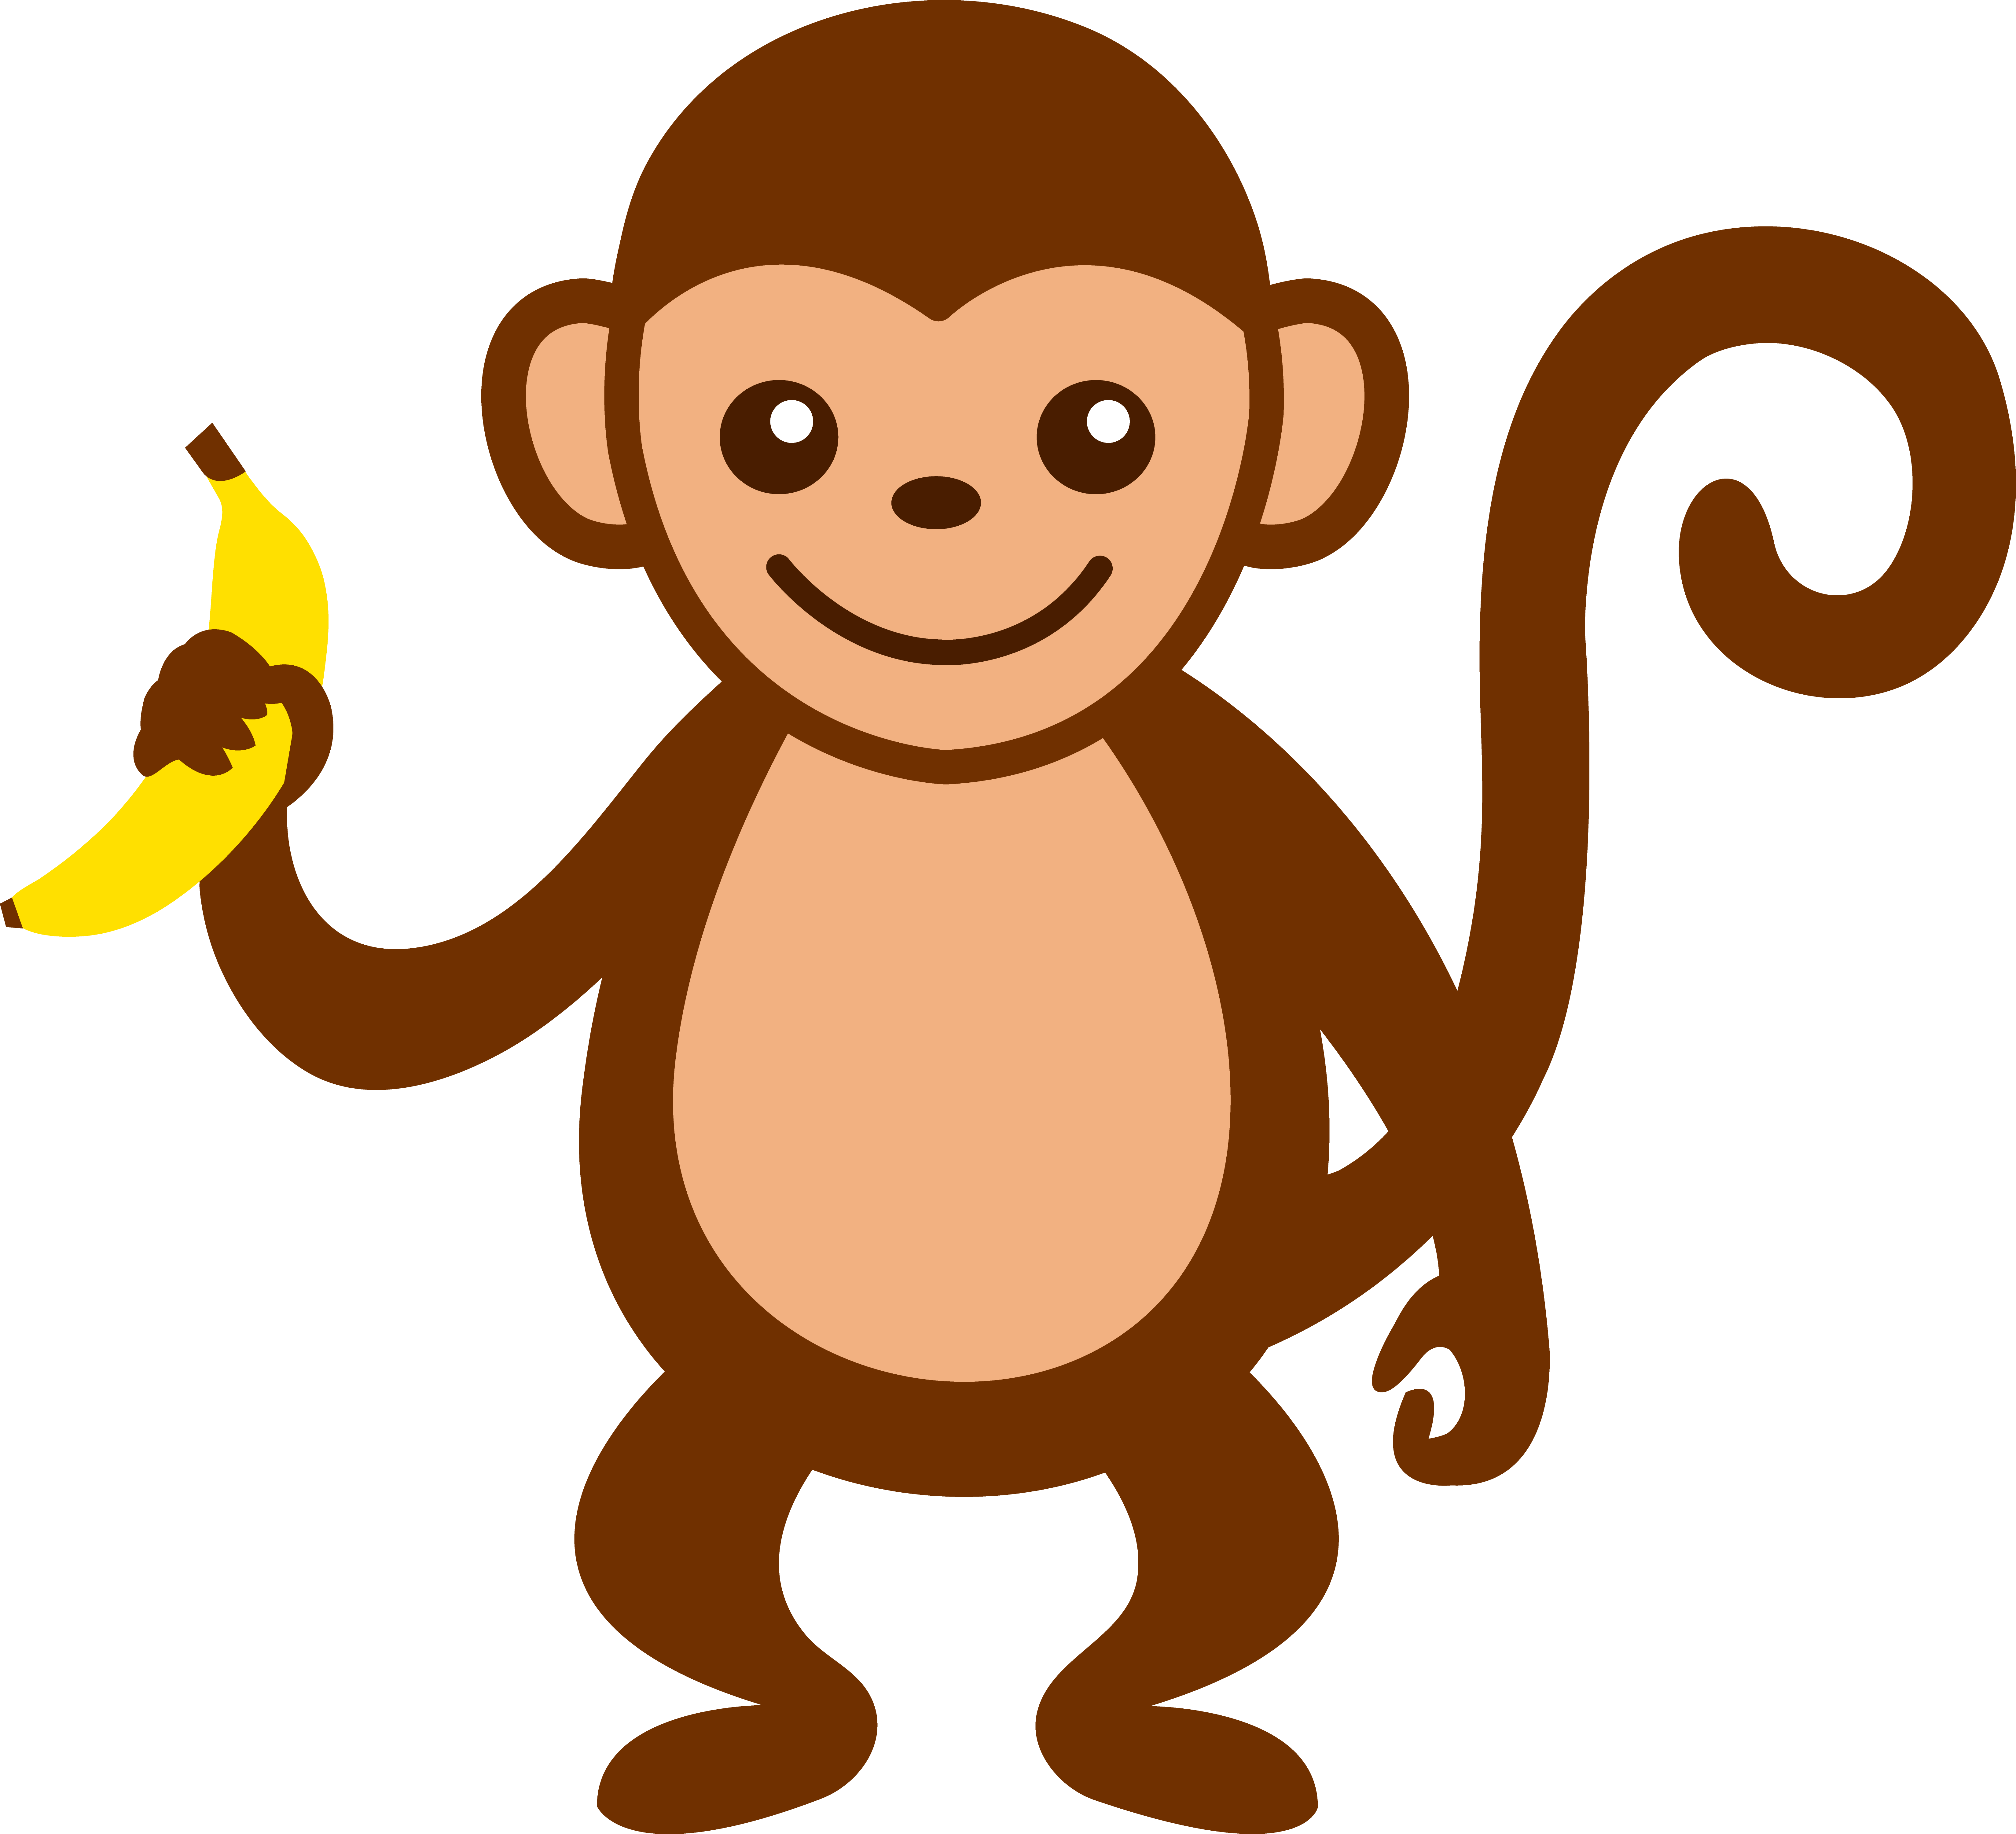 Tree clipart monkey. Cartoon clip art cute